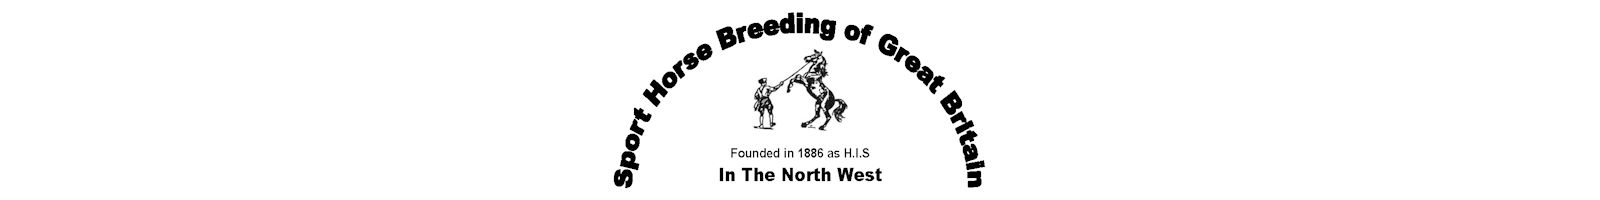 Sports Horse Breeding in the Northwest